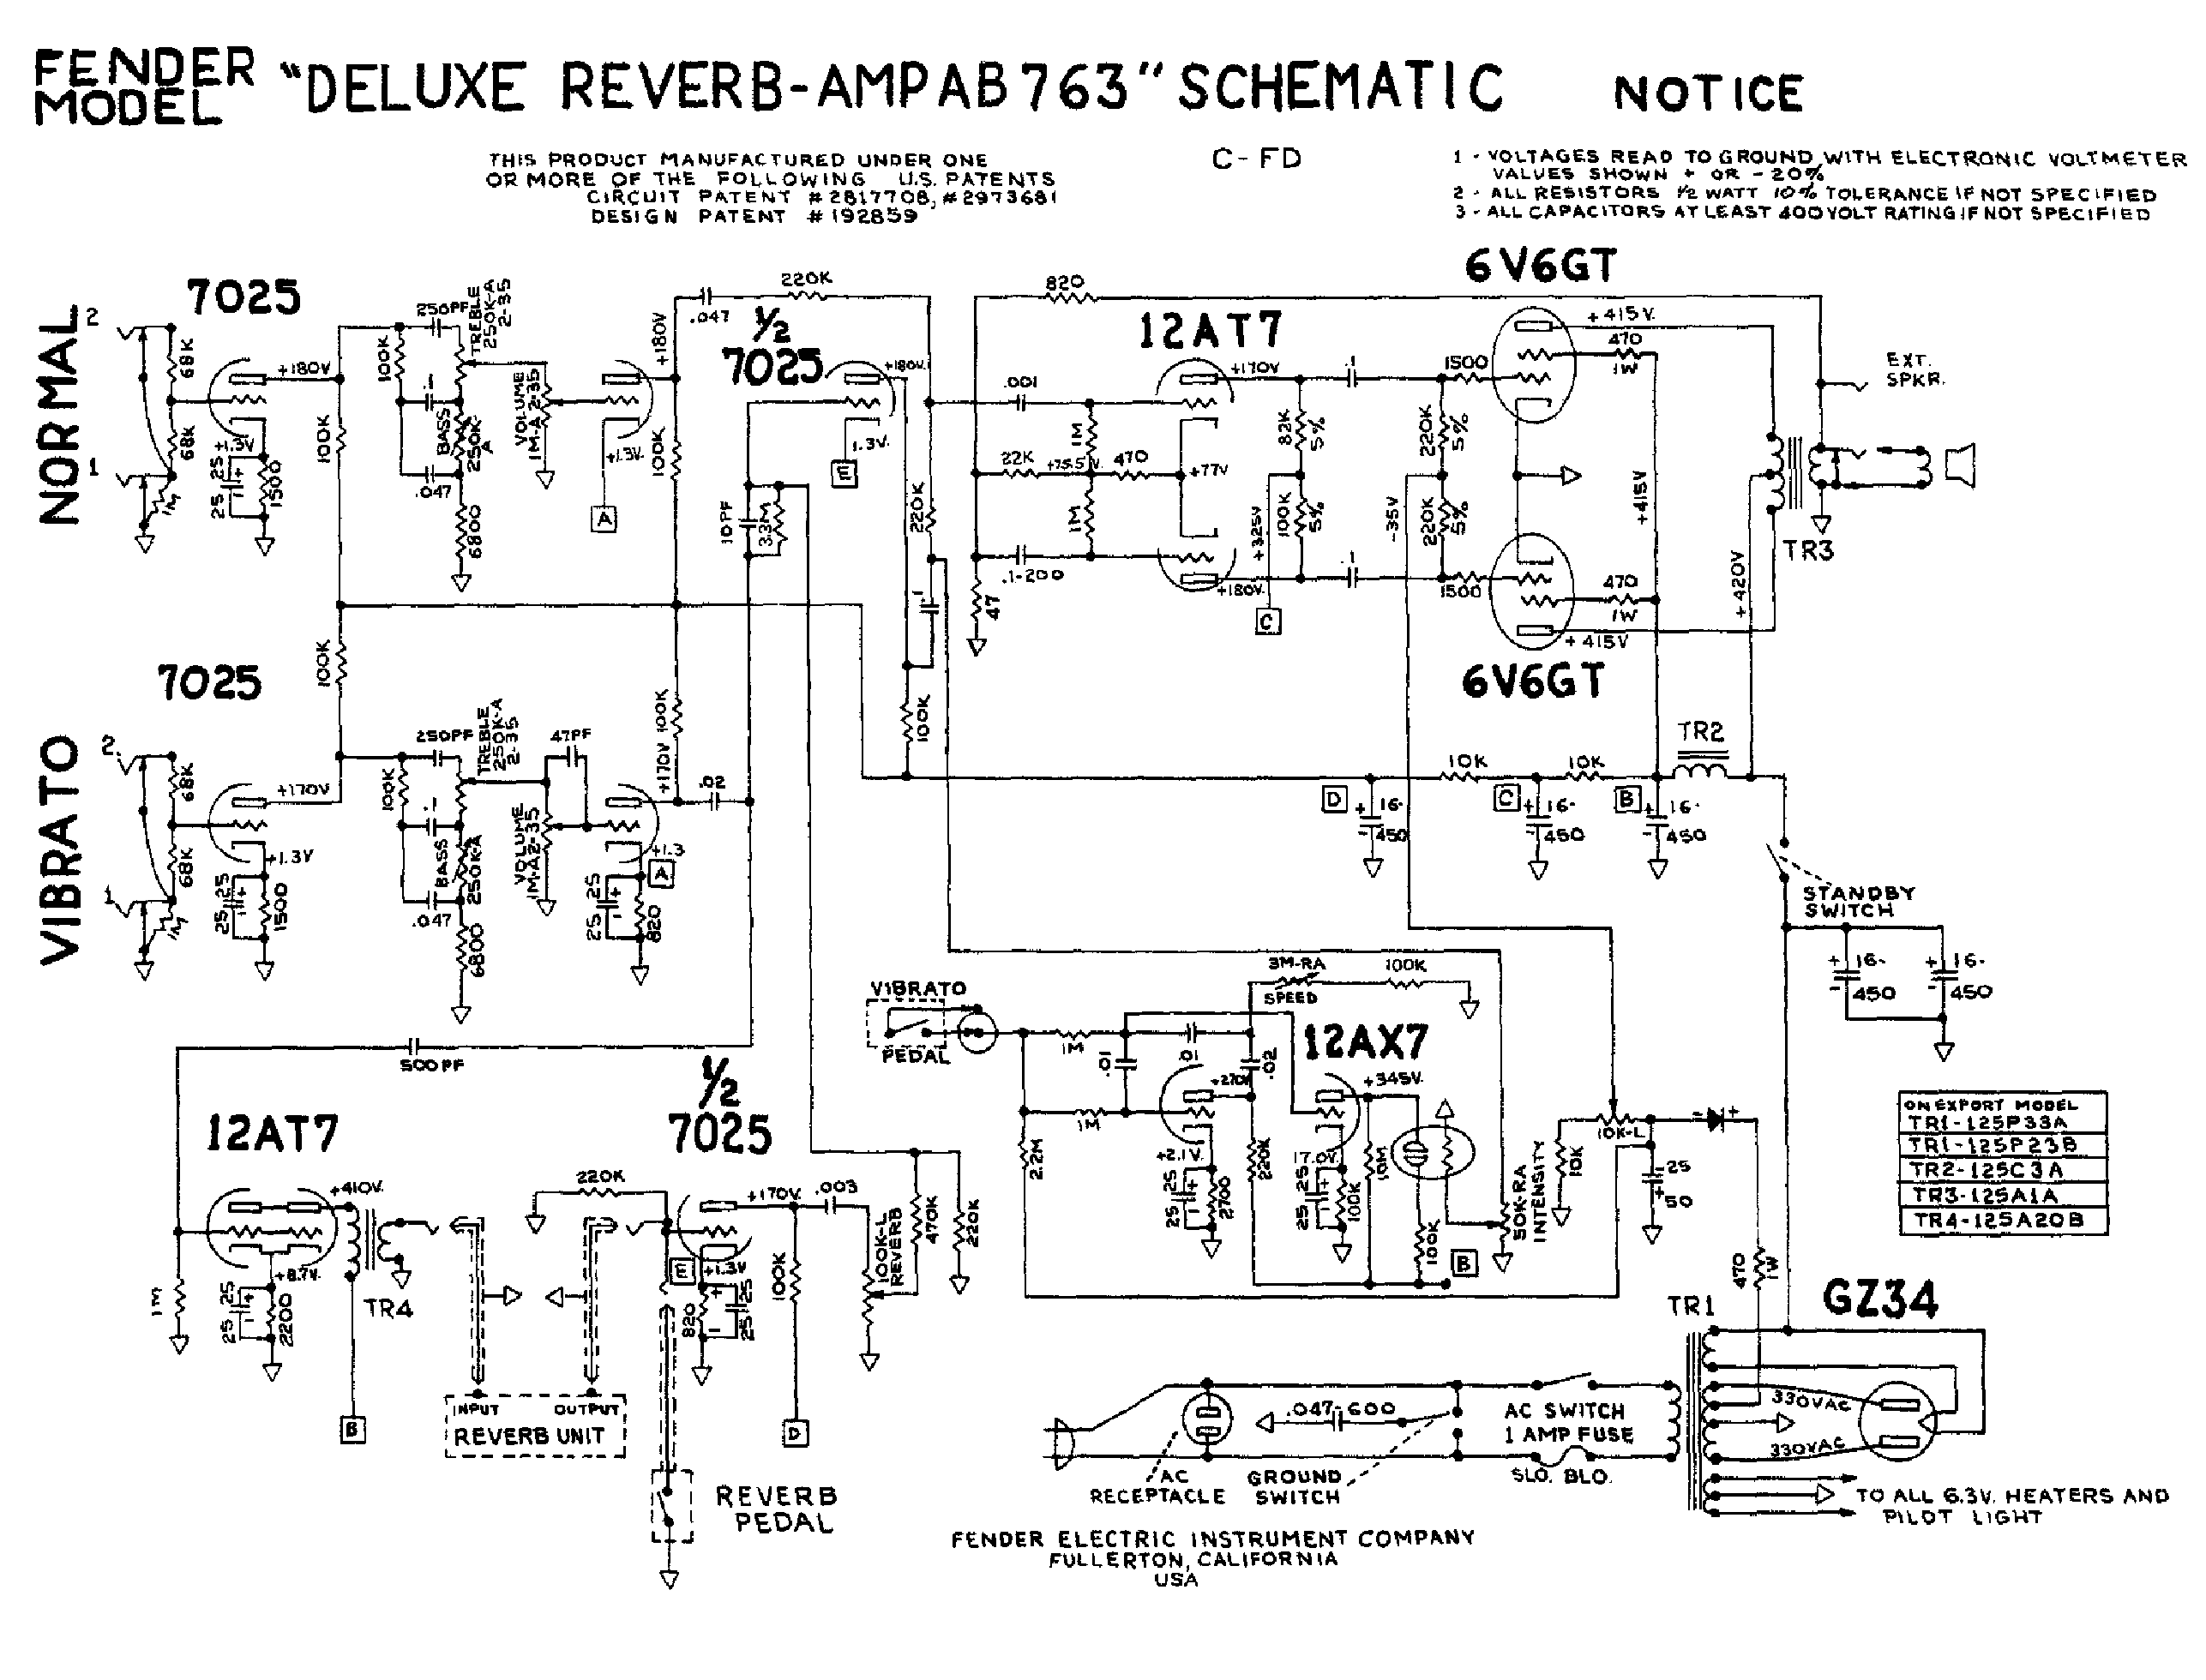 fender deluxe reverb ab763 service manual download schematics rh elektrotanya com fender 68 custom deluxe reverb service manual fender deluxe reverb ii owner's manual